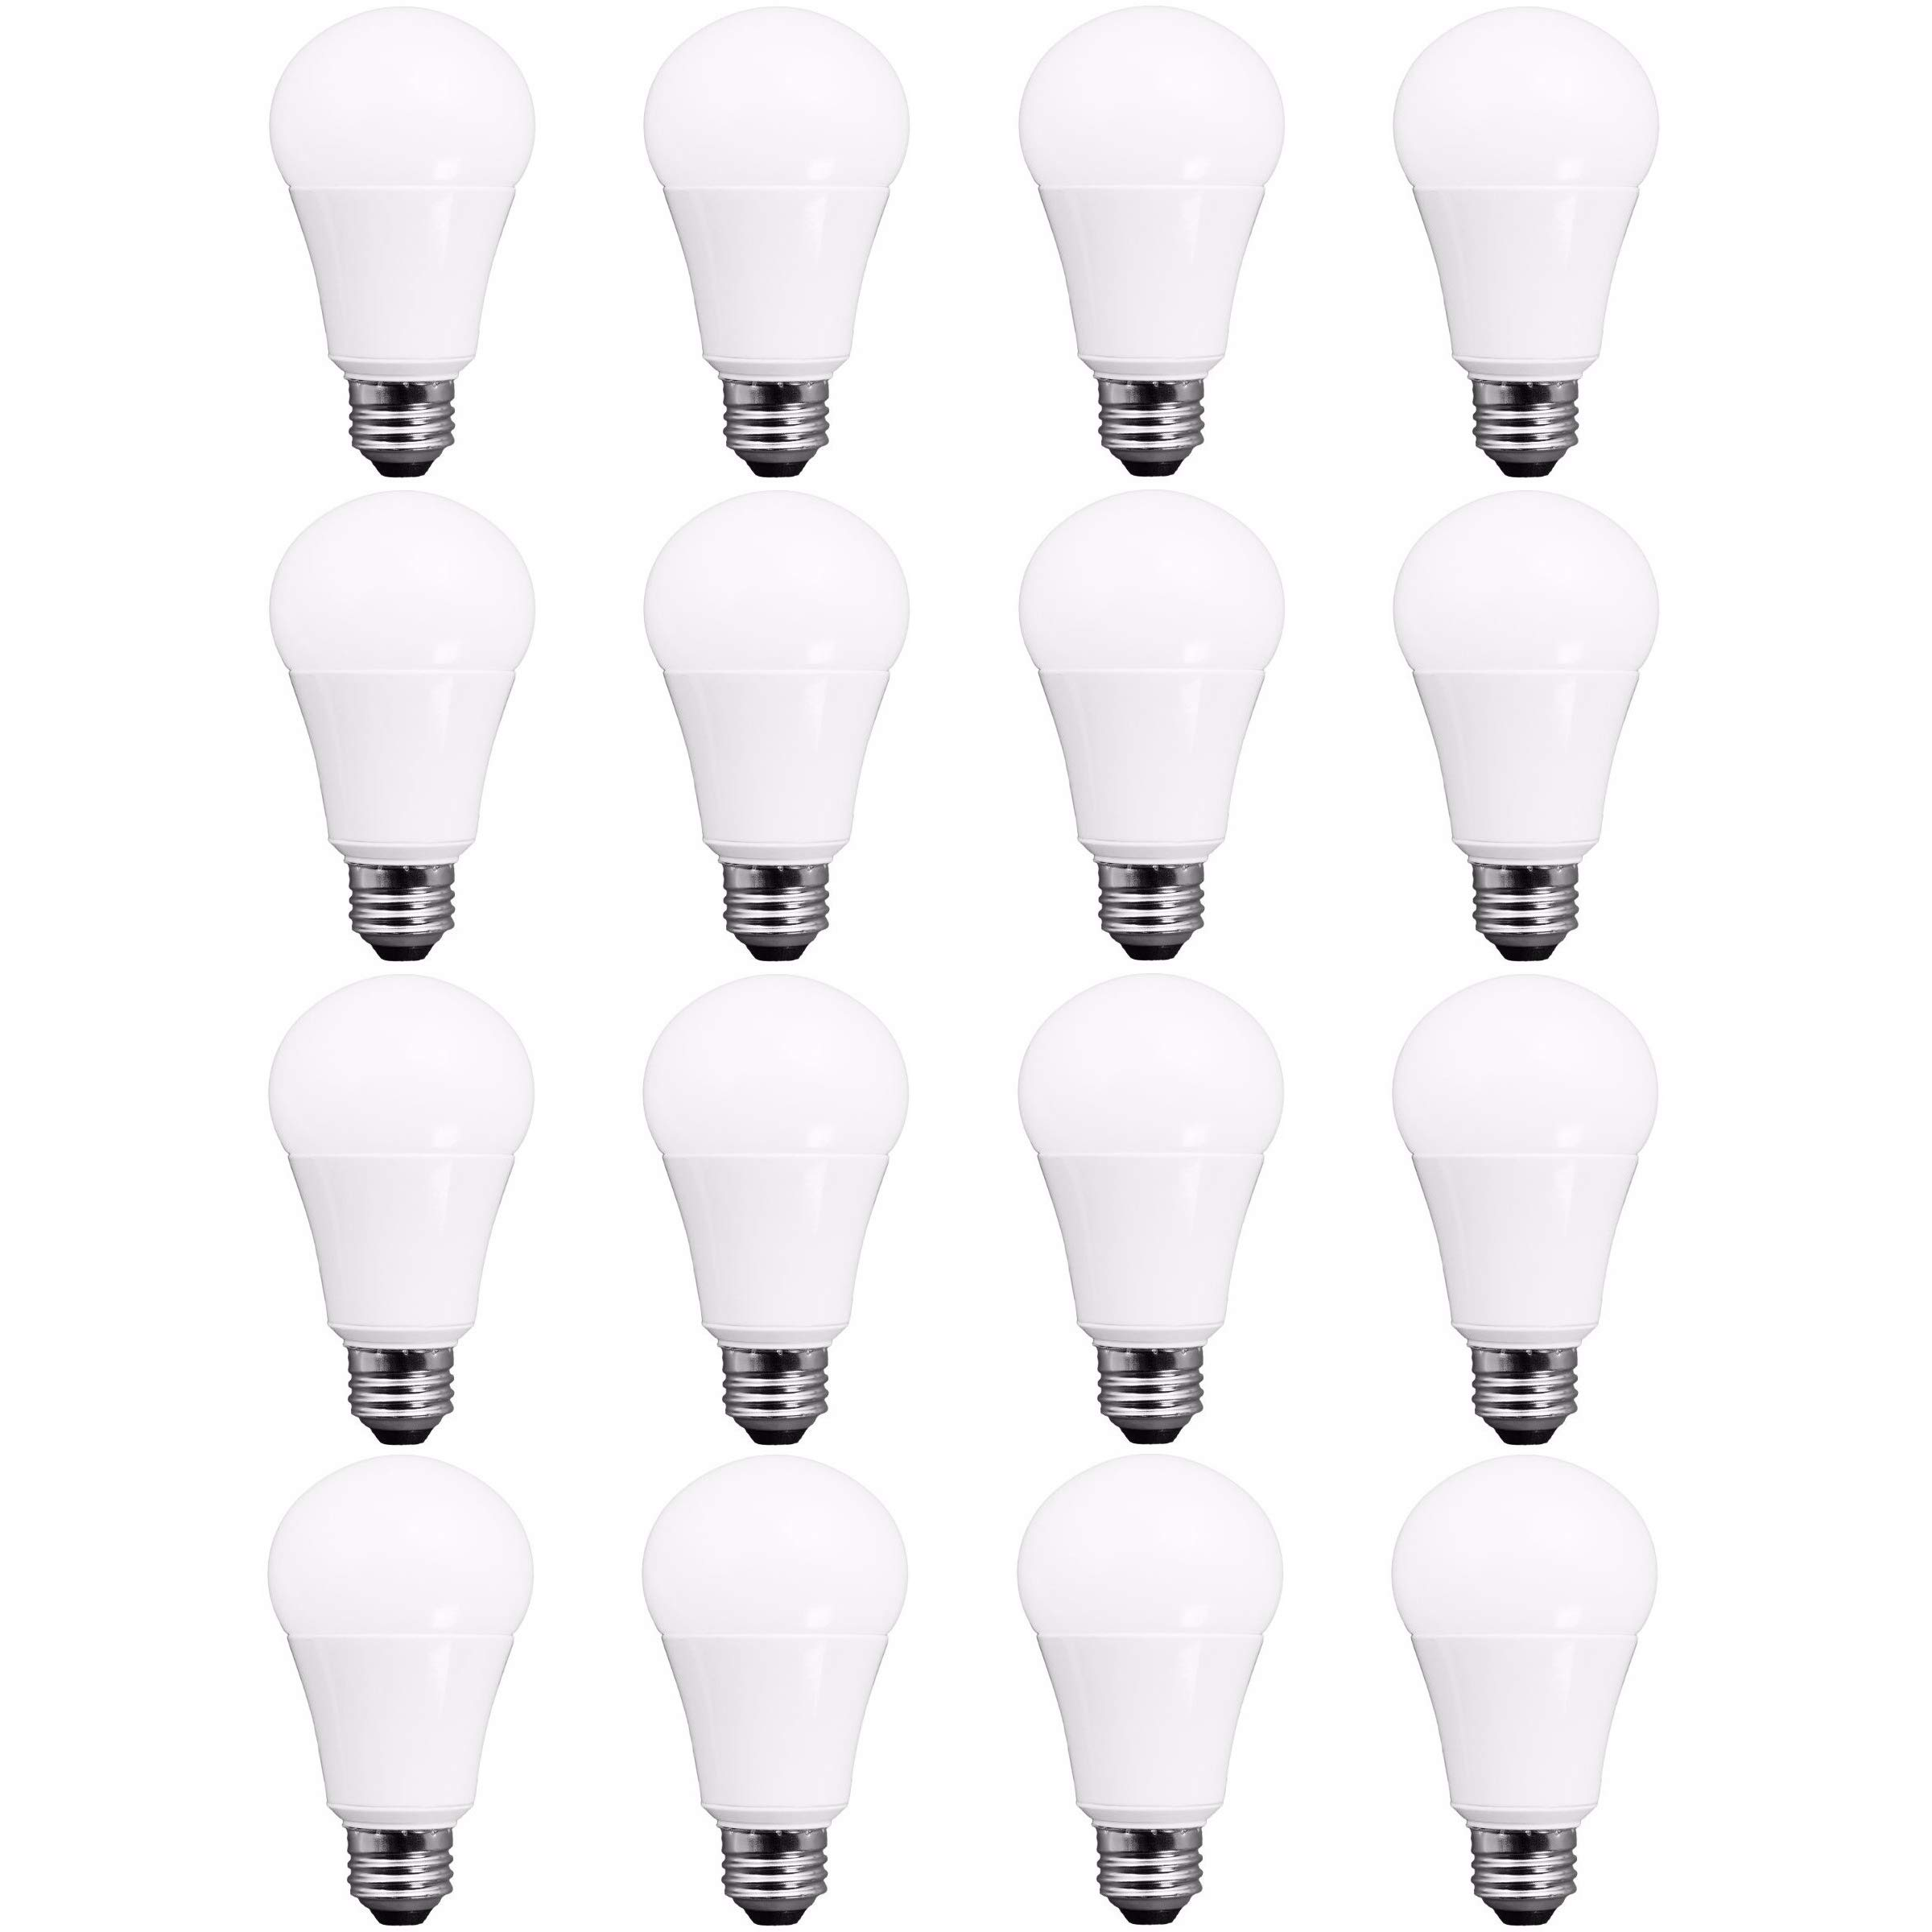 TCP RLVA6027ND16 60 Watt Equivalent LED Light Bulbs | Shatter Resistant 9W Energy Efficient | Non-Dimmable | A19 Shape E26 Medium Base, Pack of 16, Soft White, 16 Pack by TCP (Image #1)